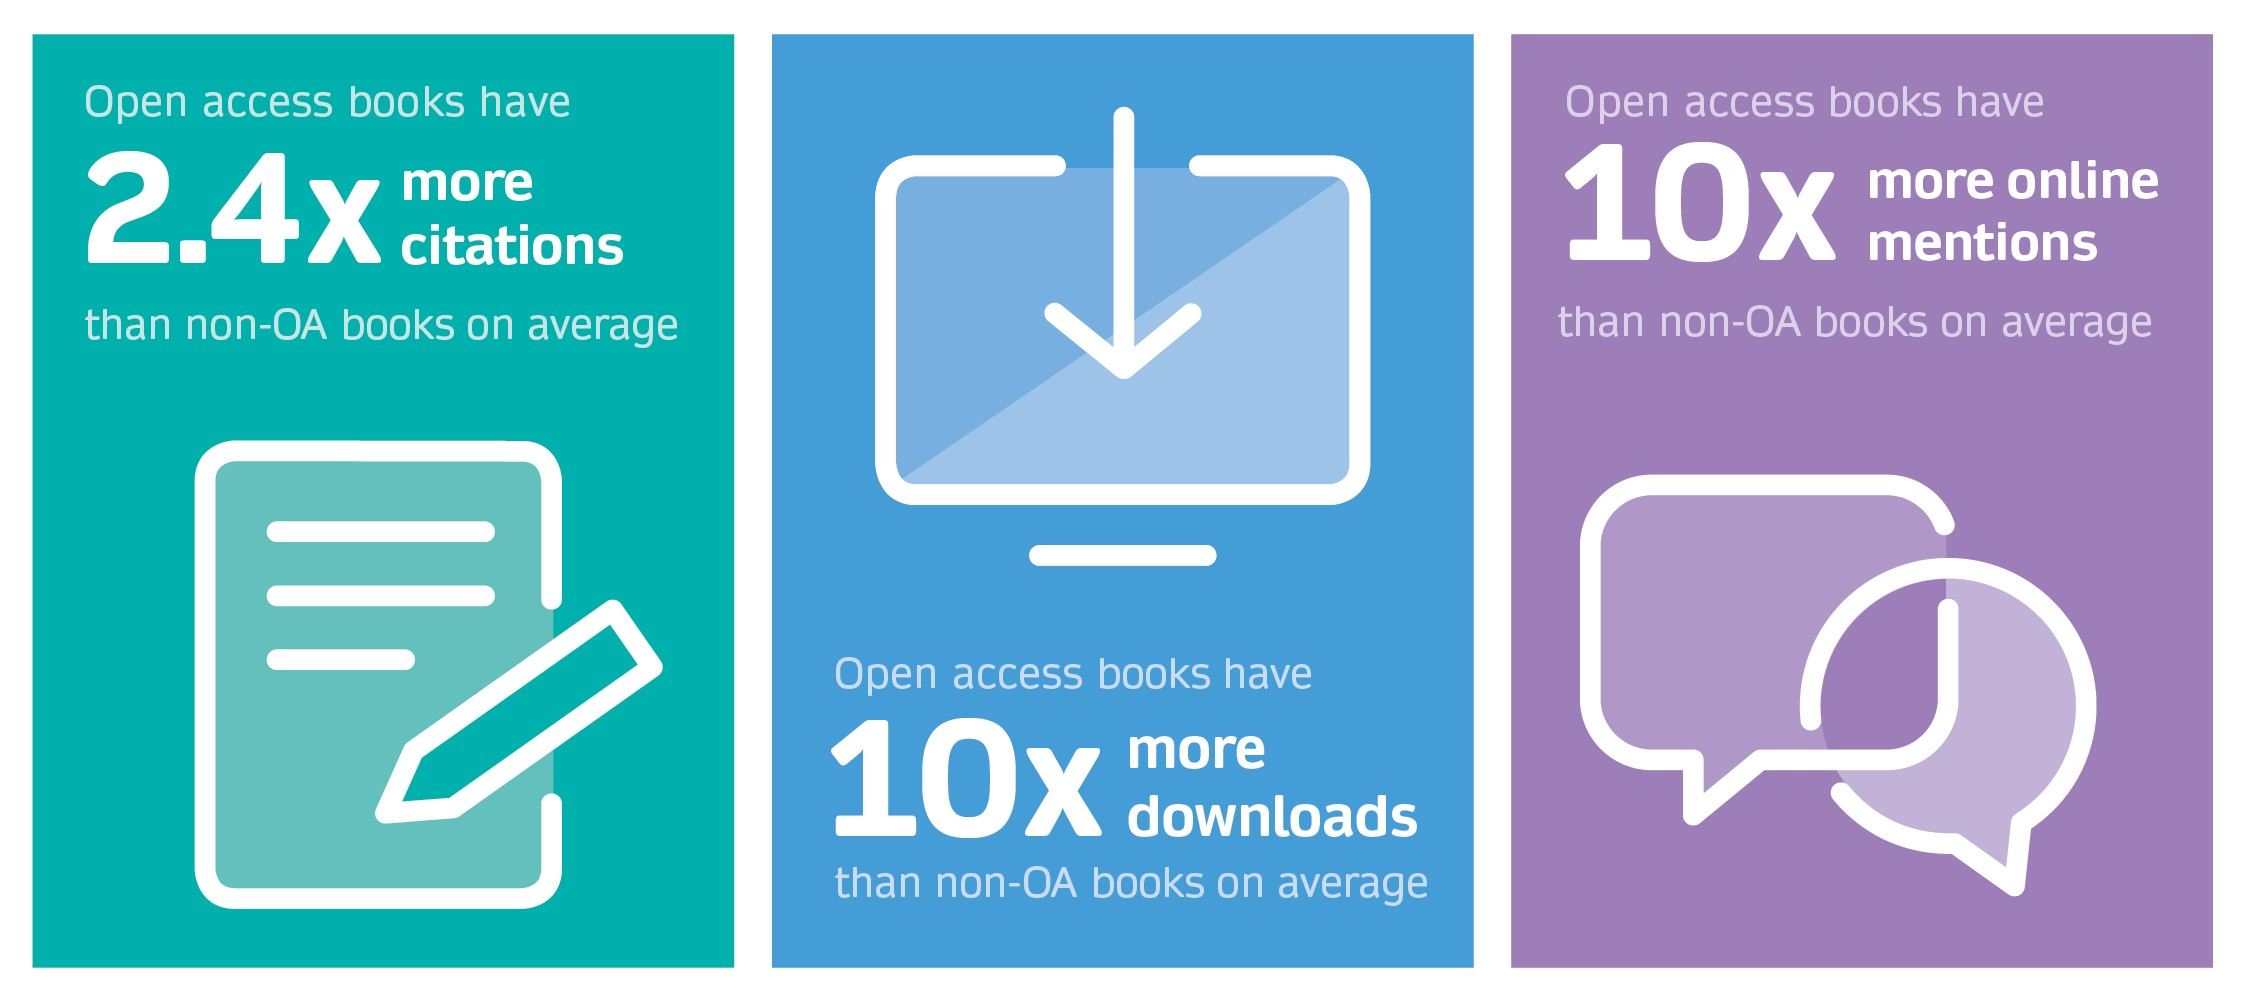 Open access books advantage